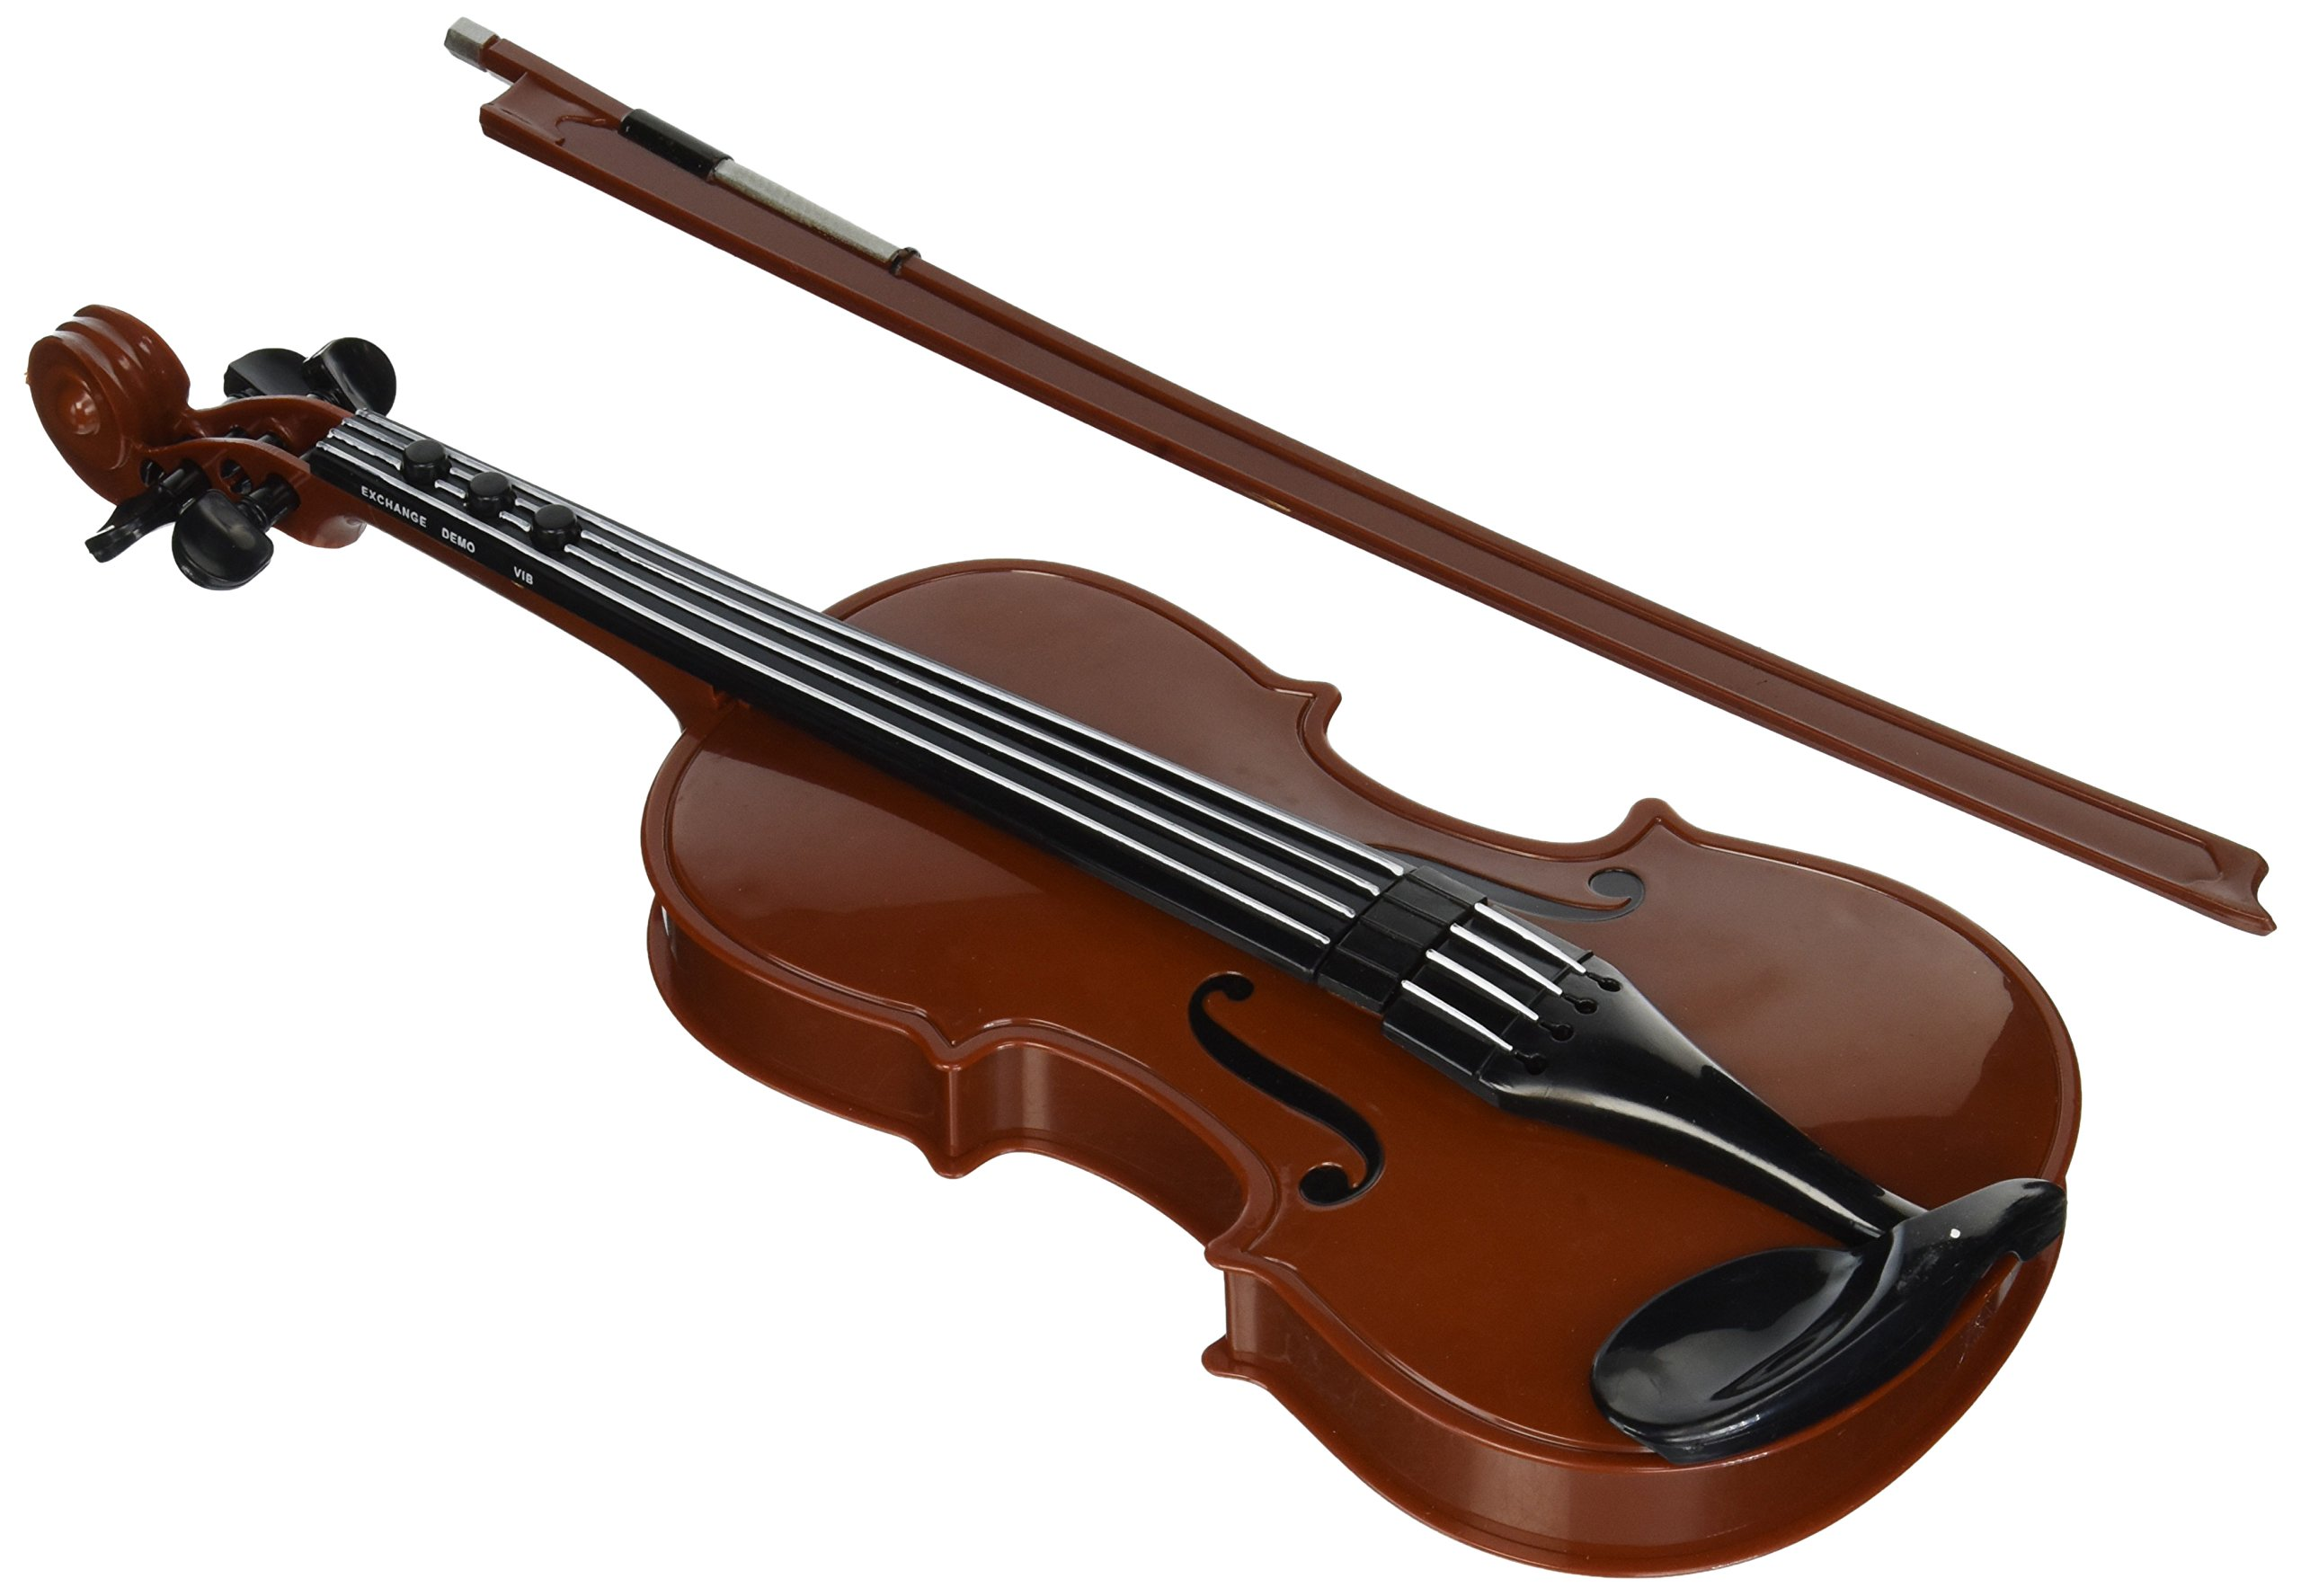 Rhode Island Novelty 097138803221 Electronic Violin Toy Musical Portable Instrument, Multi, 16.5''